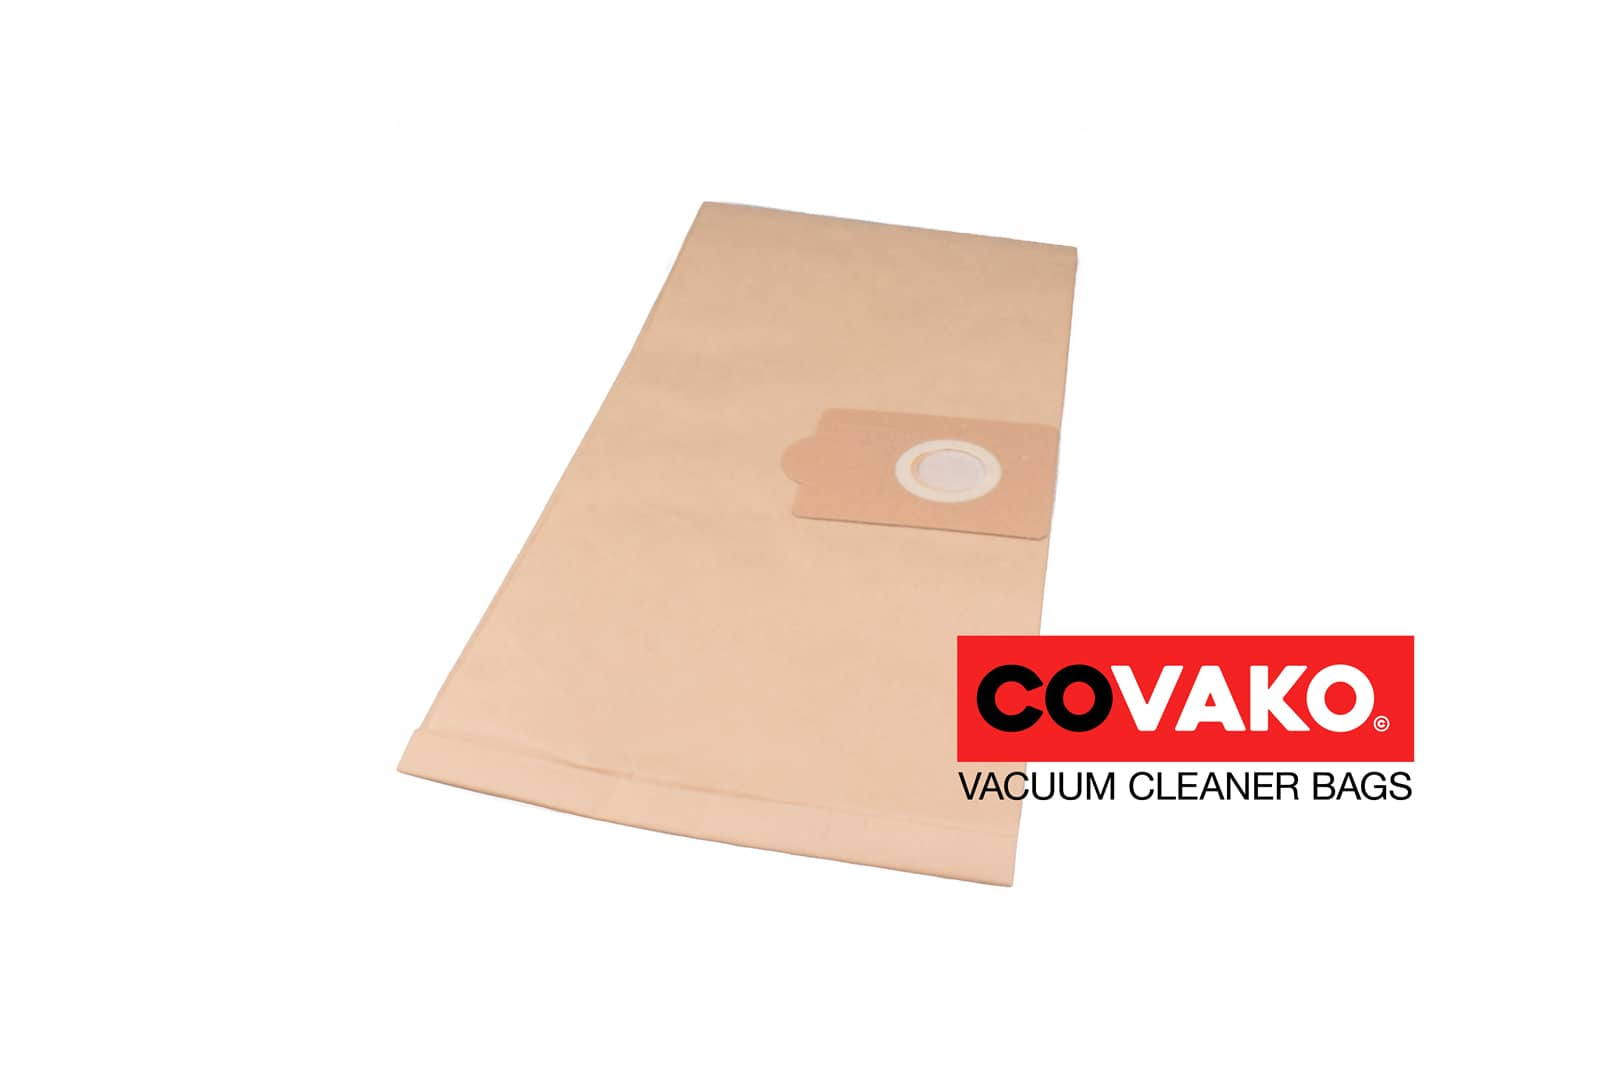 Kenter Silent 25 / Paper - Kenter vacuum cleaner bags